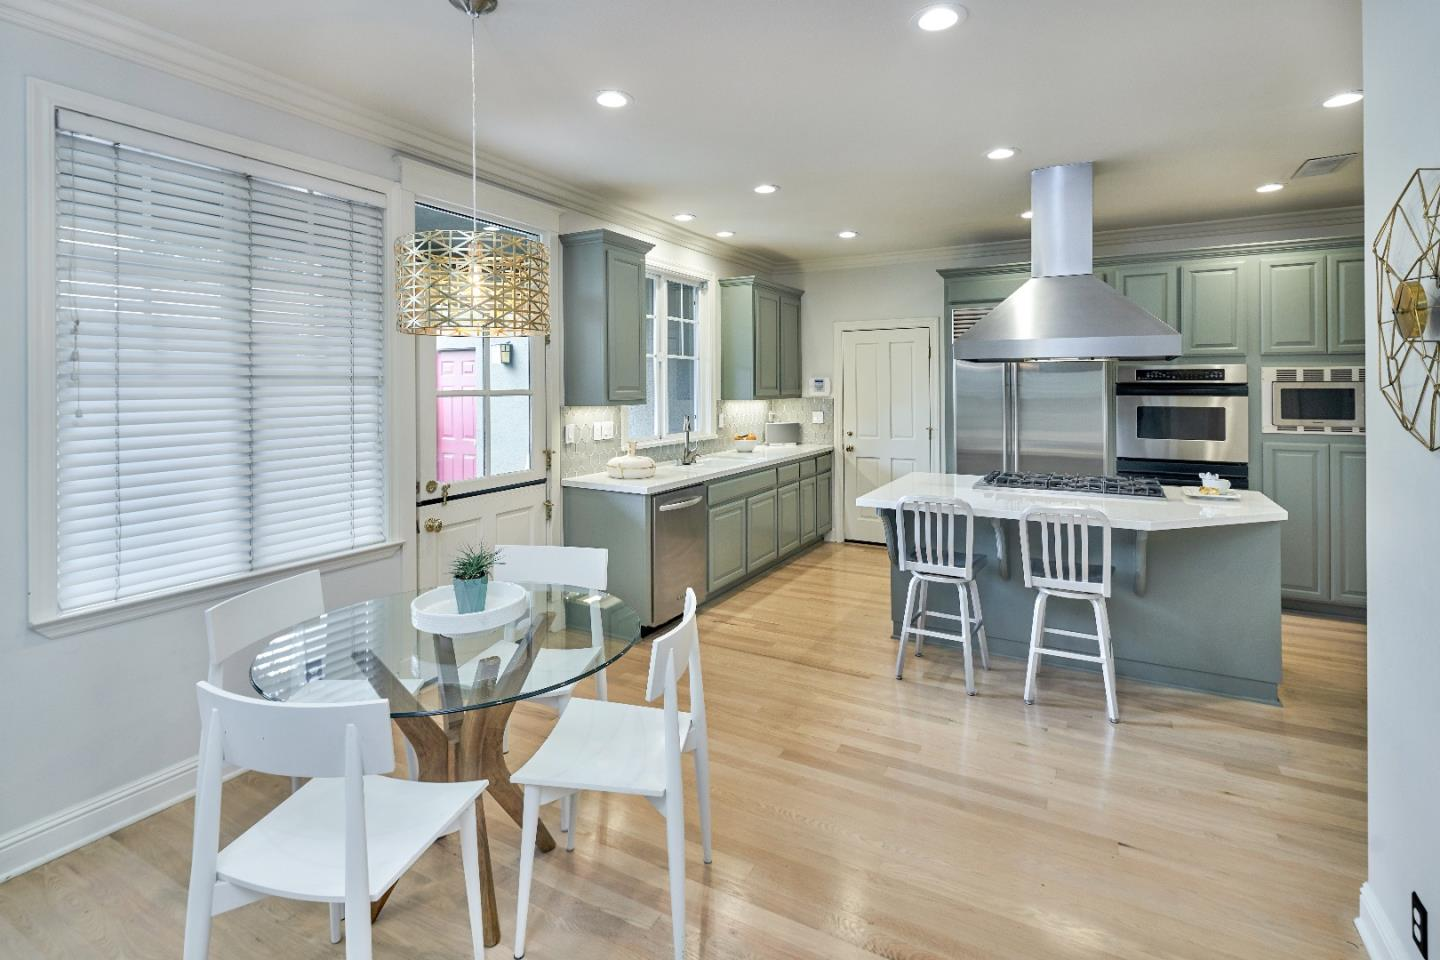 Additional photo for property listing at 1063 Bird Ave  SAN JOSE, CALIFORNIA 95125